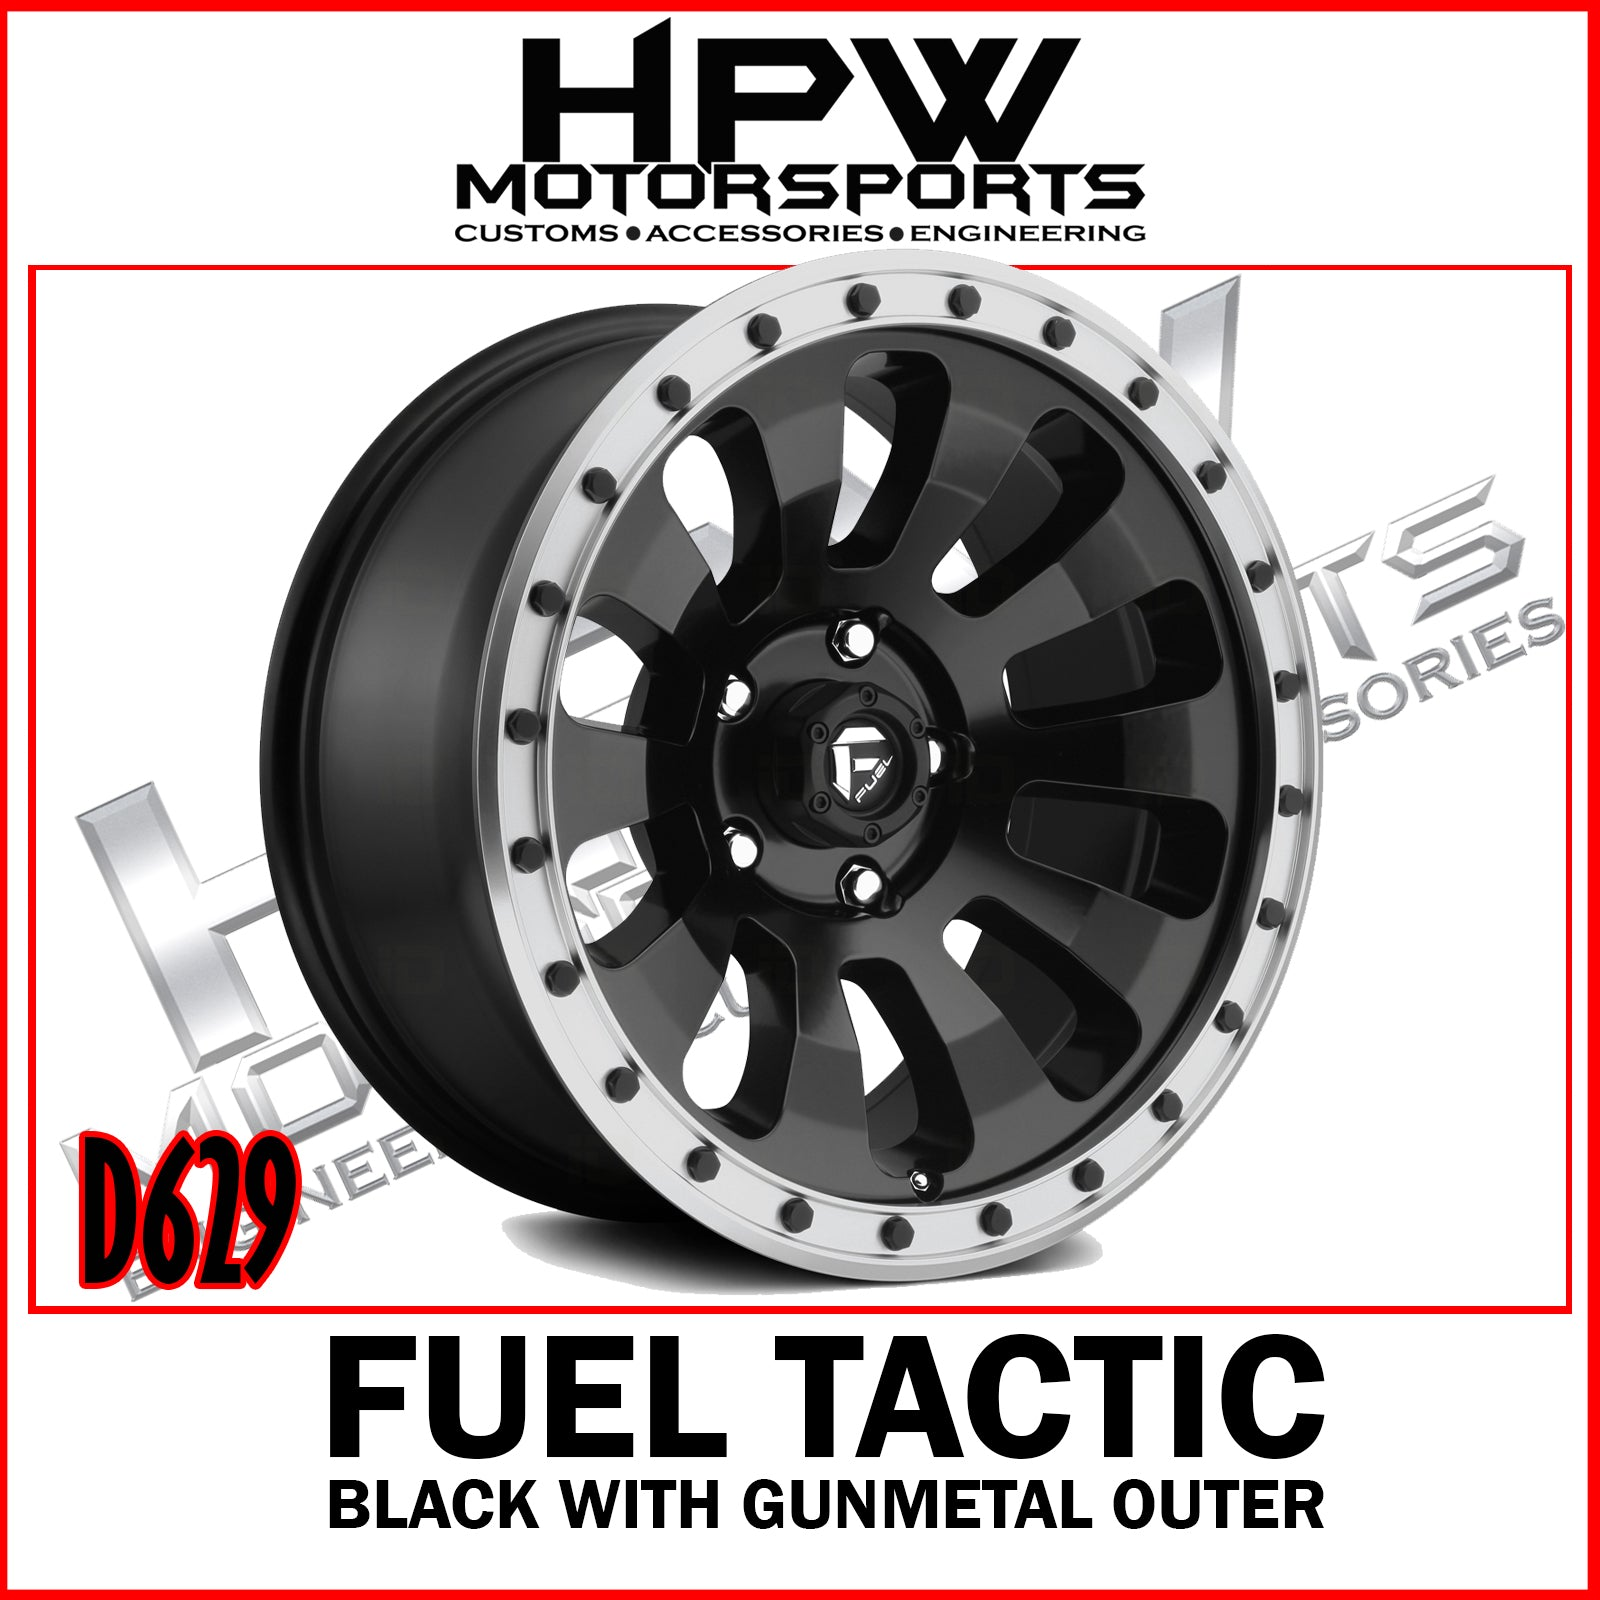 D629 FUEL TACTIC - BLACK CENTER / GUNMETAL OUTER - Set of 4